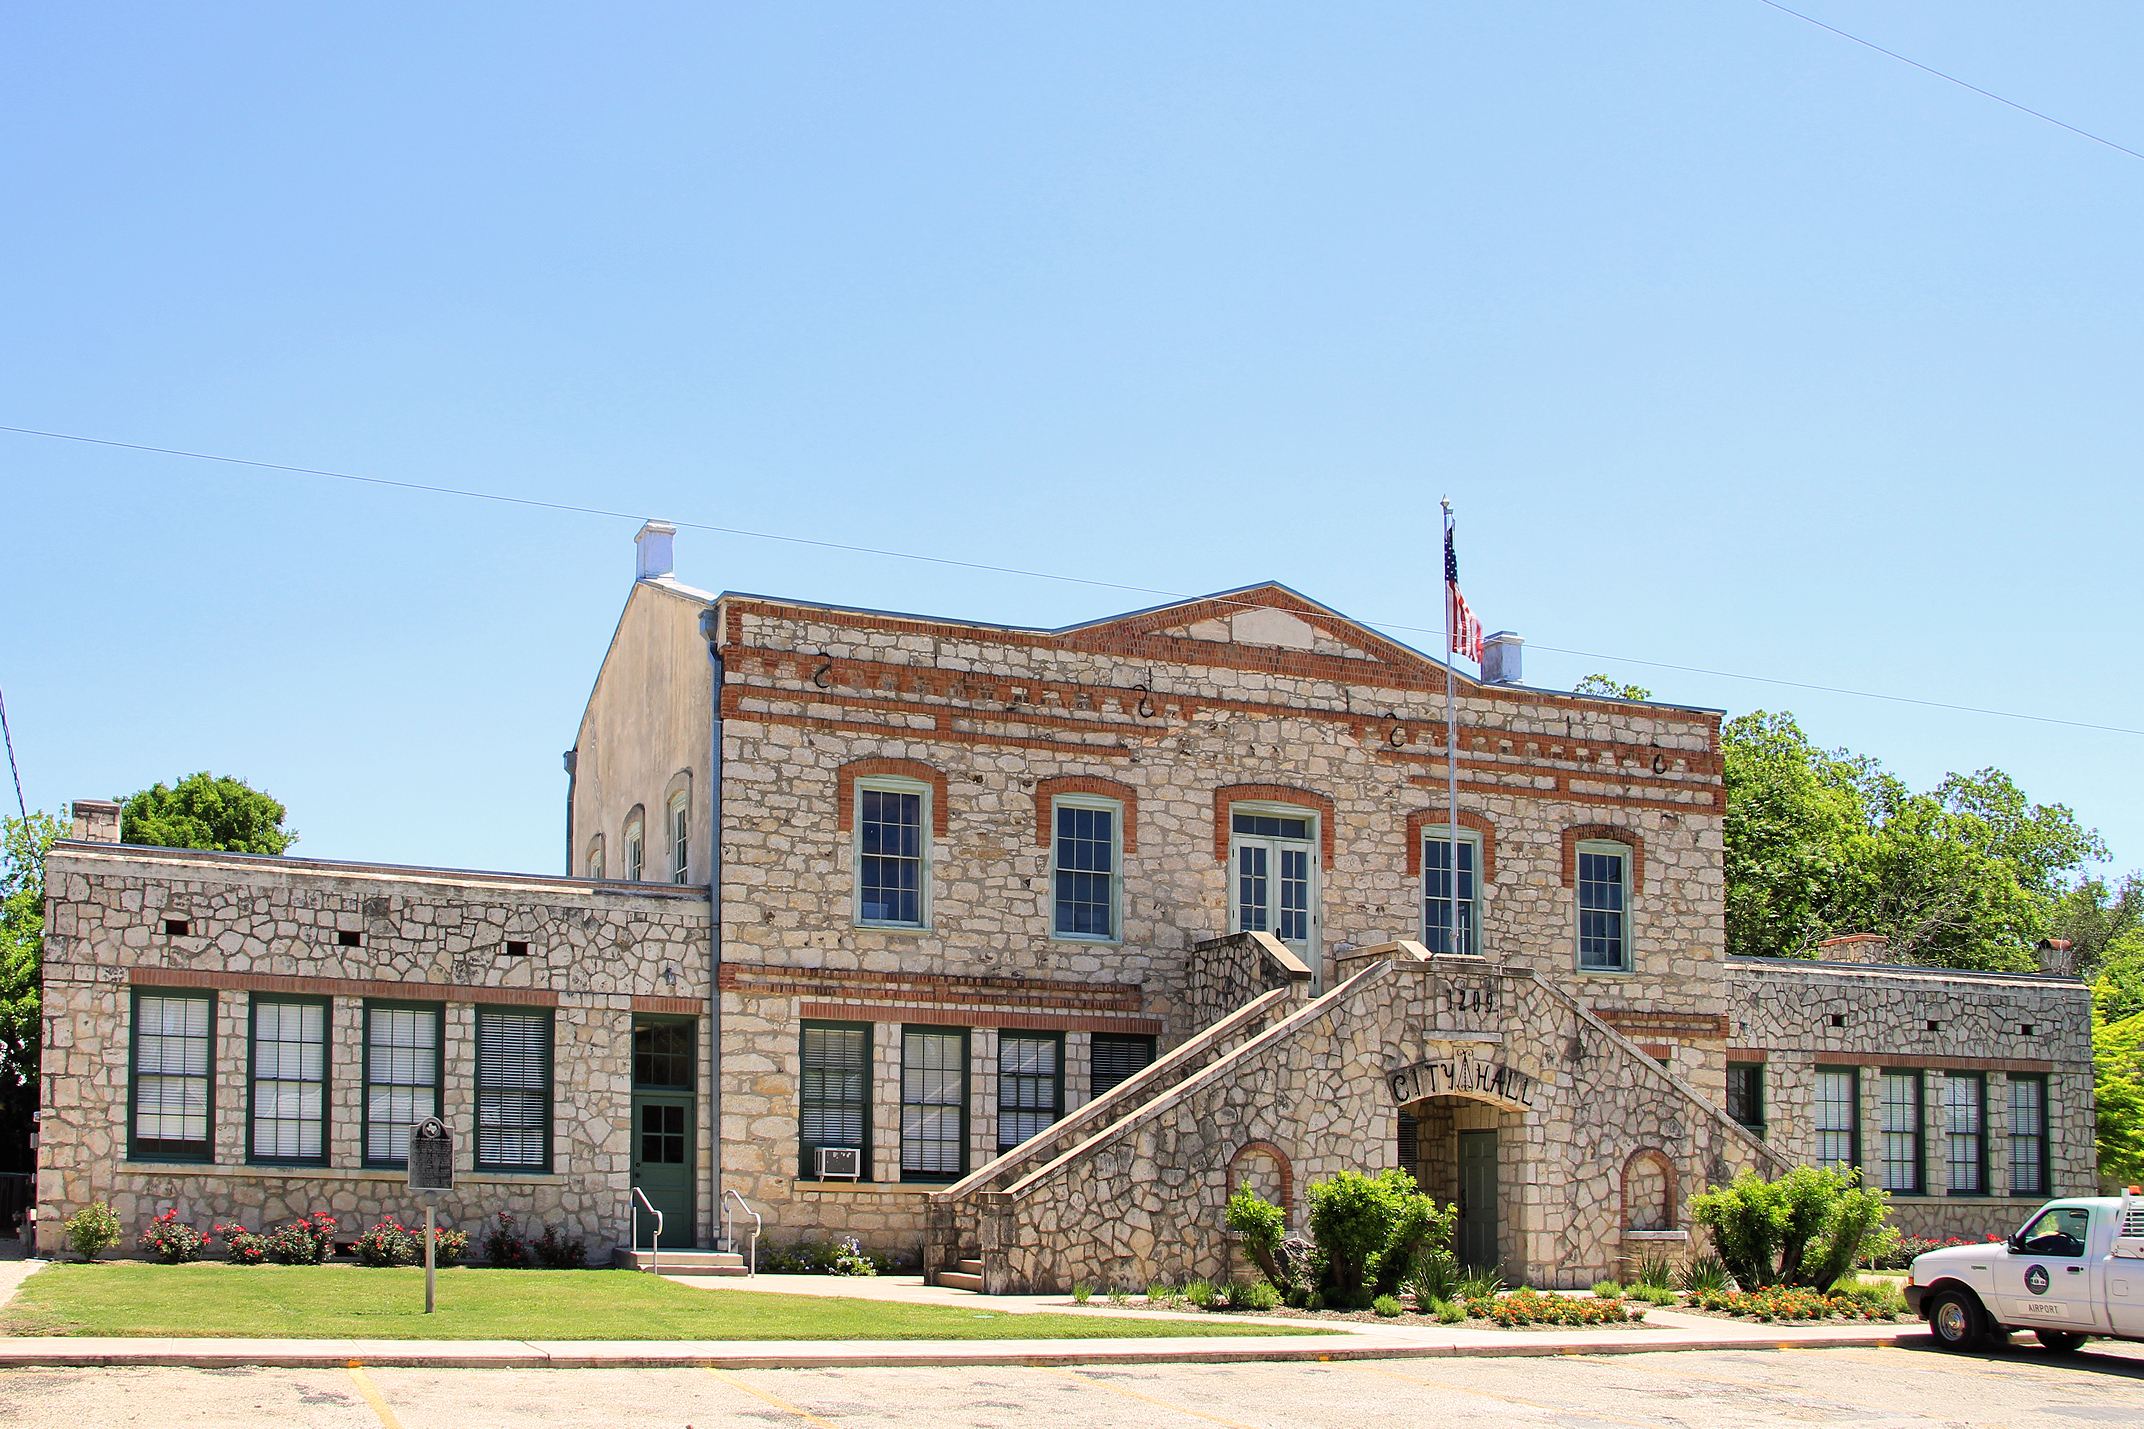 castroville_city_hall_2013